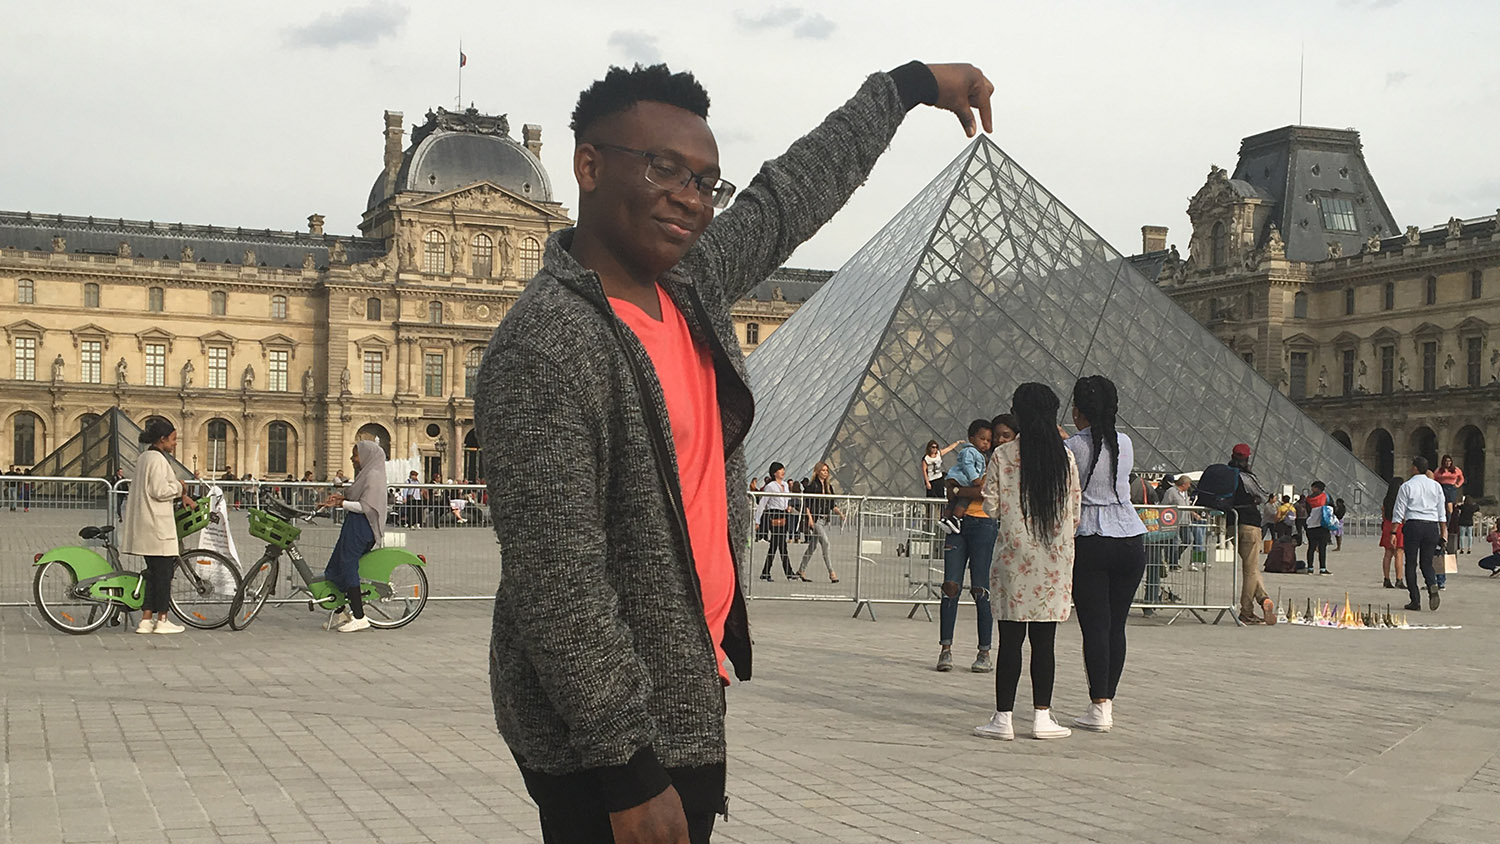 student standing in front of the Louvre